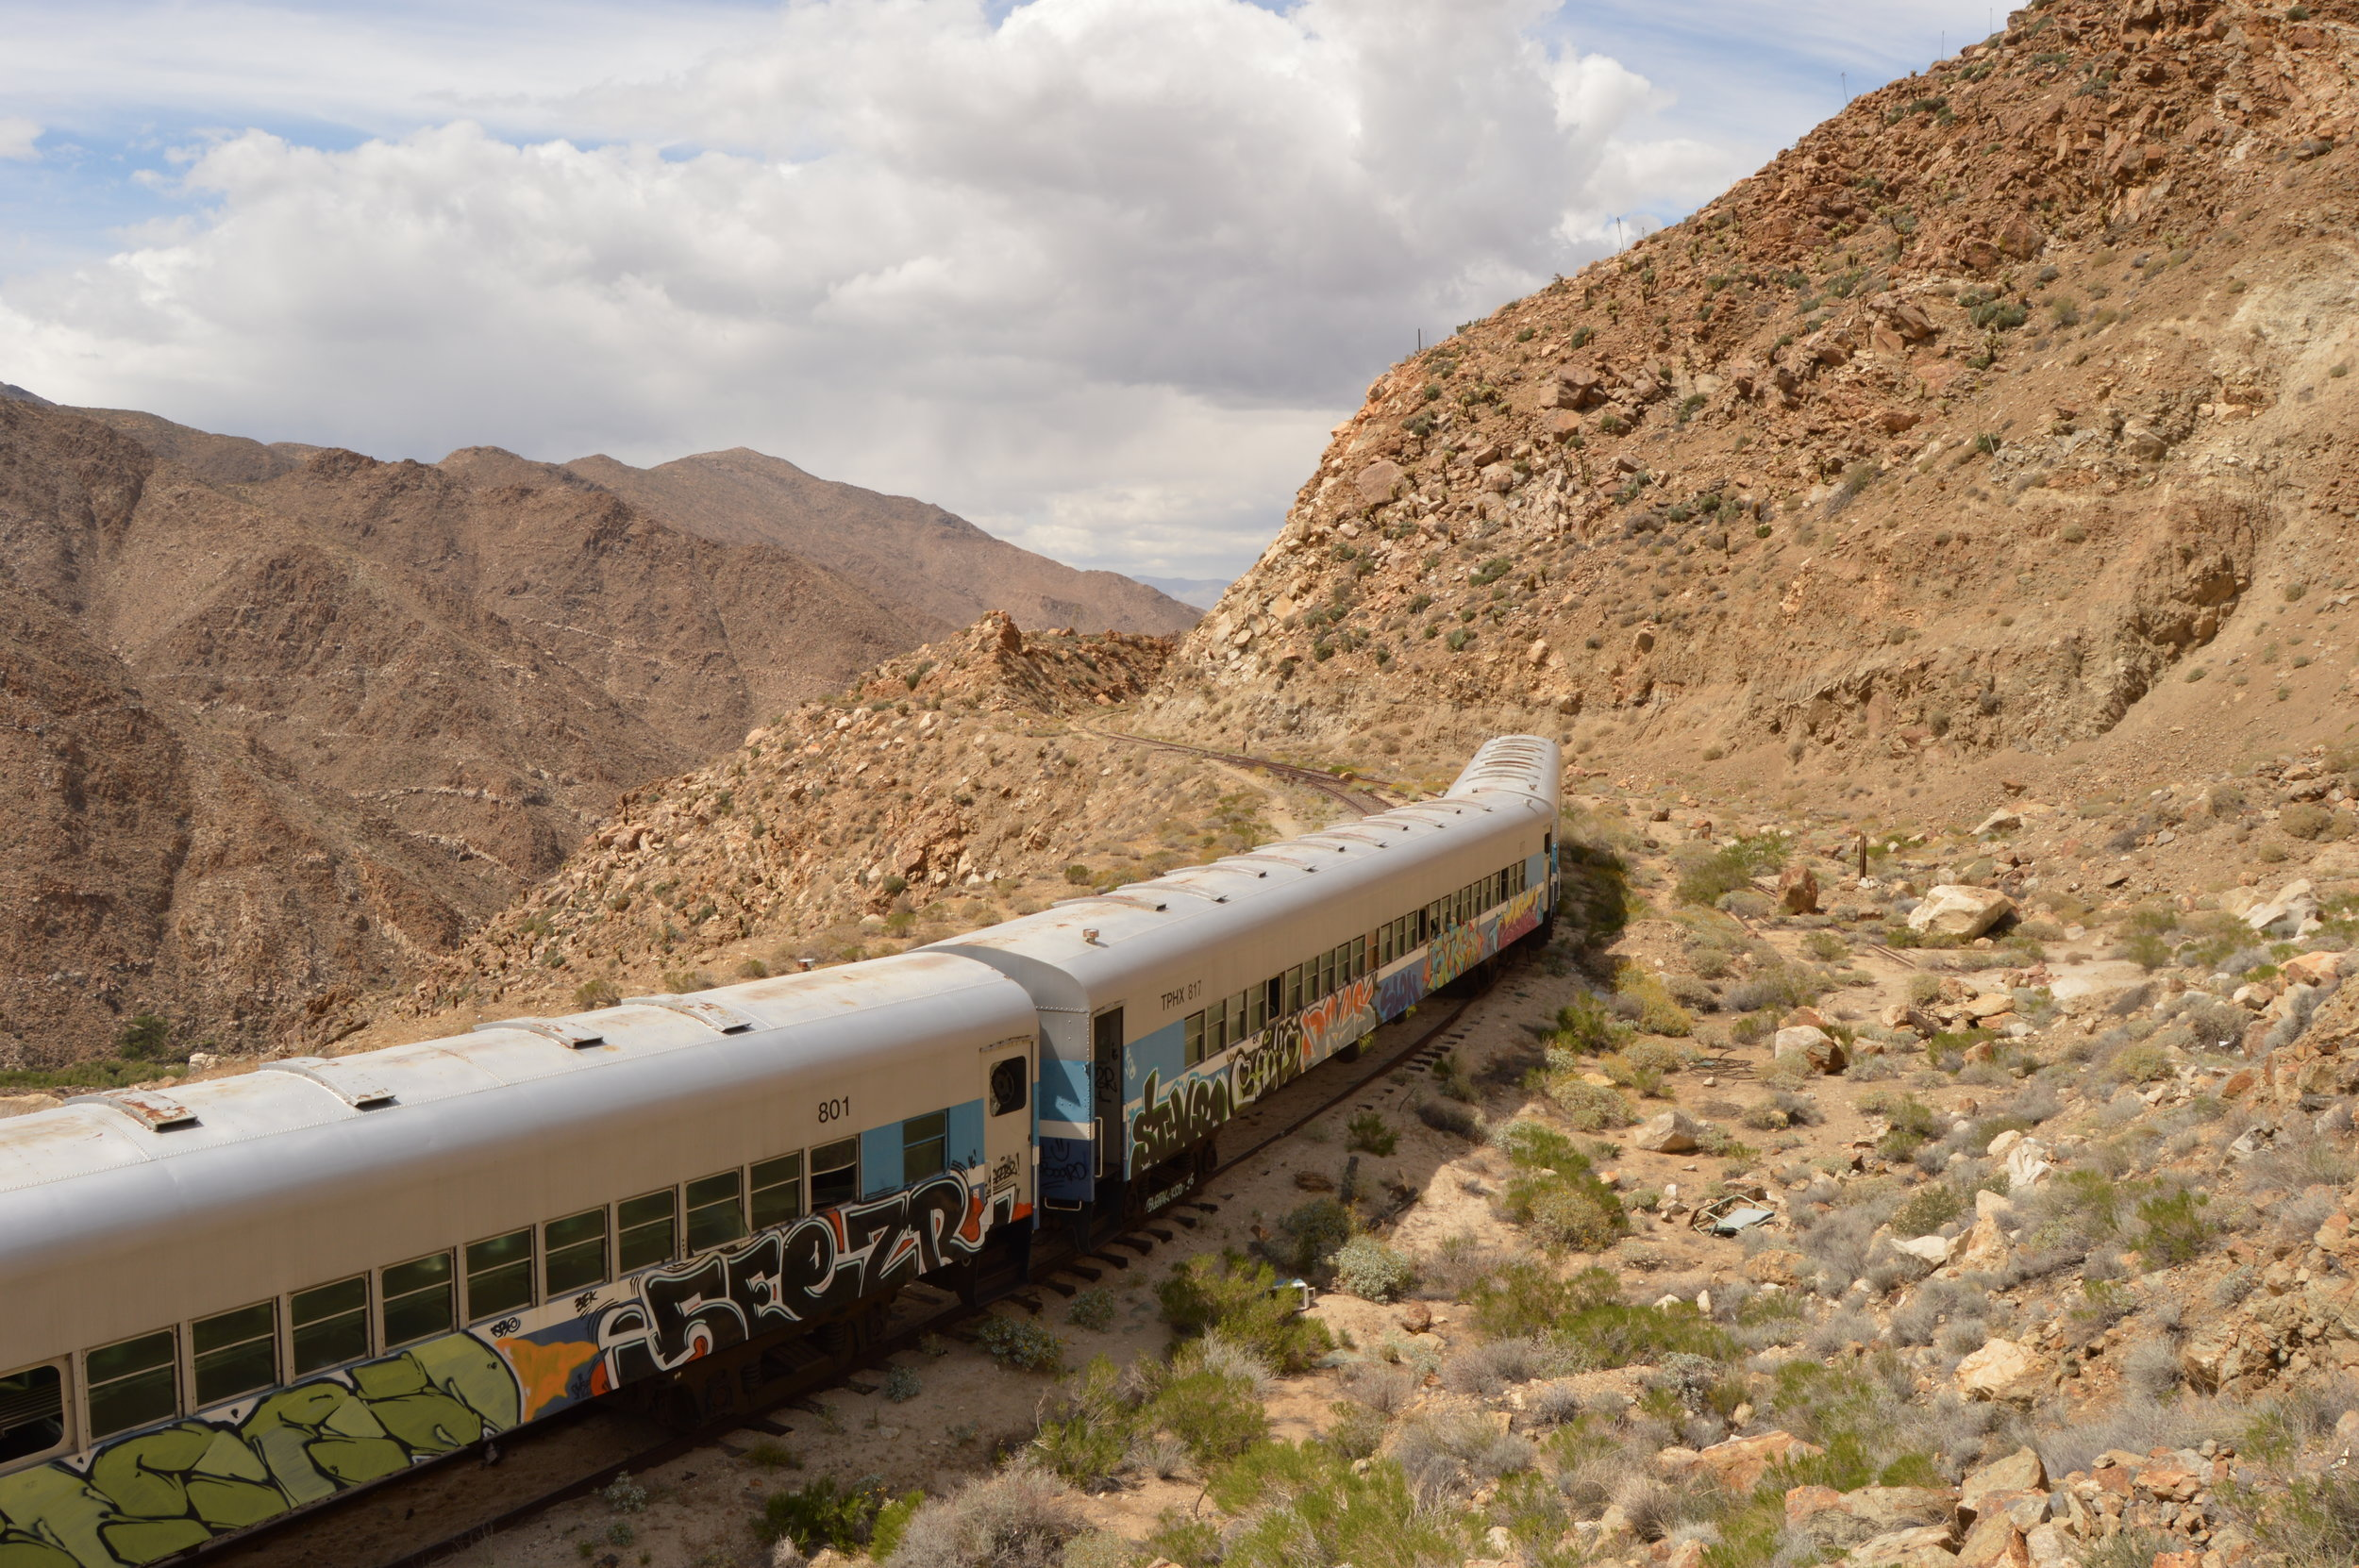 Train abandoned near the Mexican border. Photo: Joshua Stephens